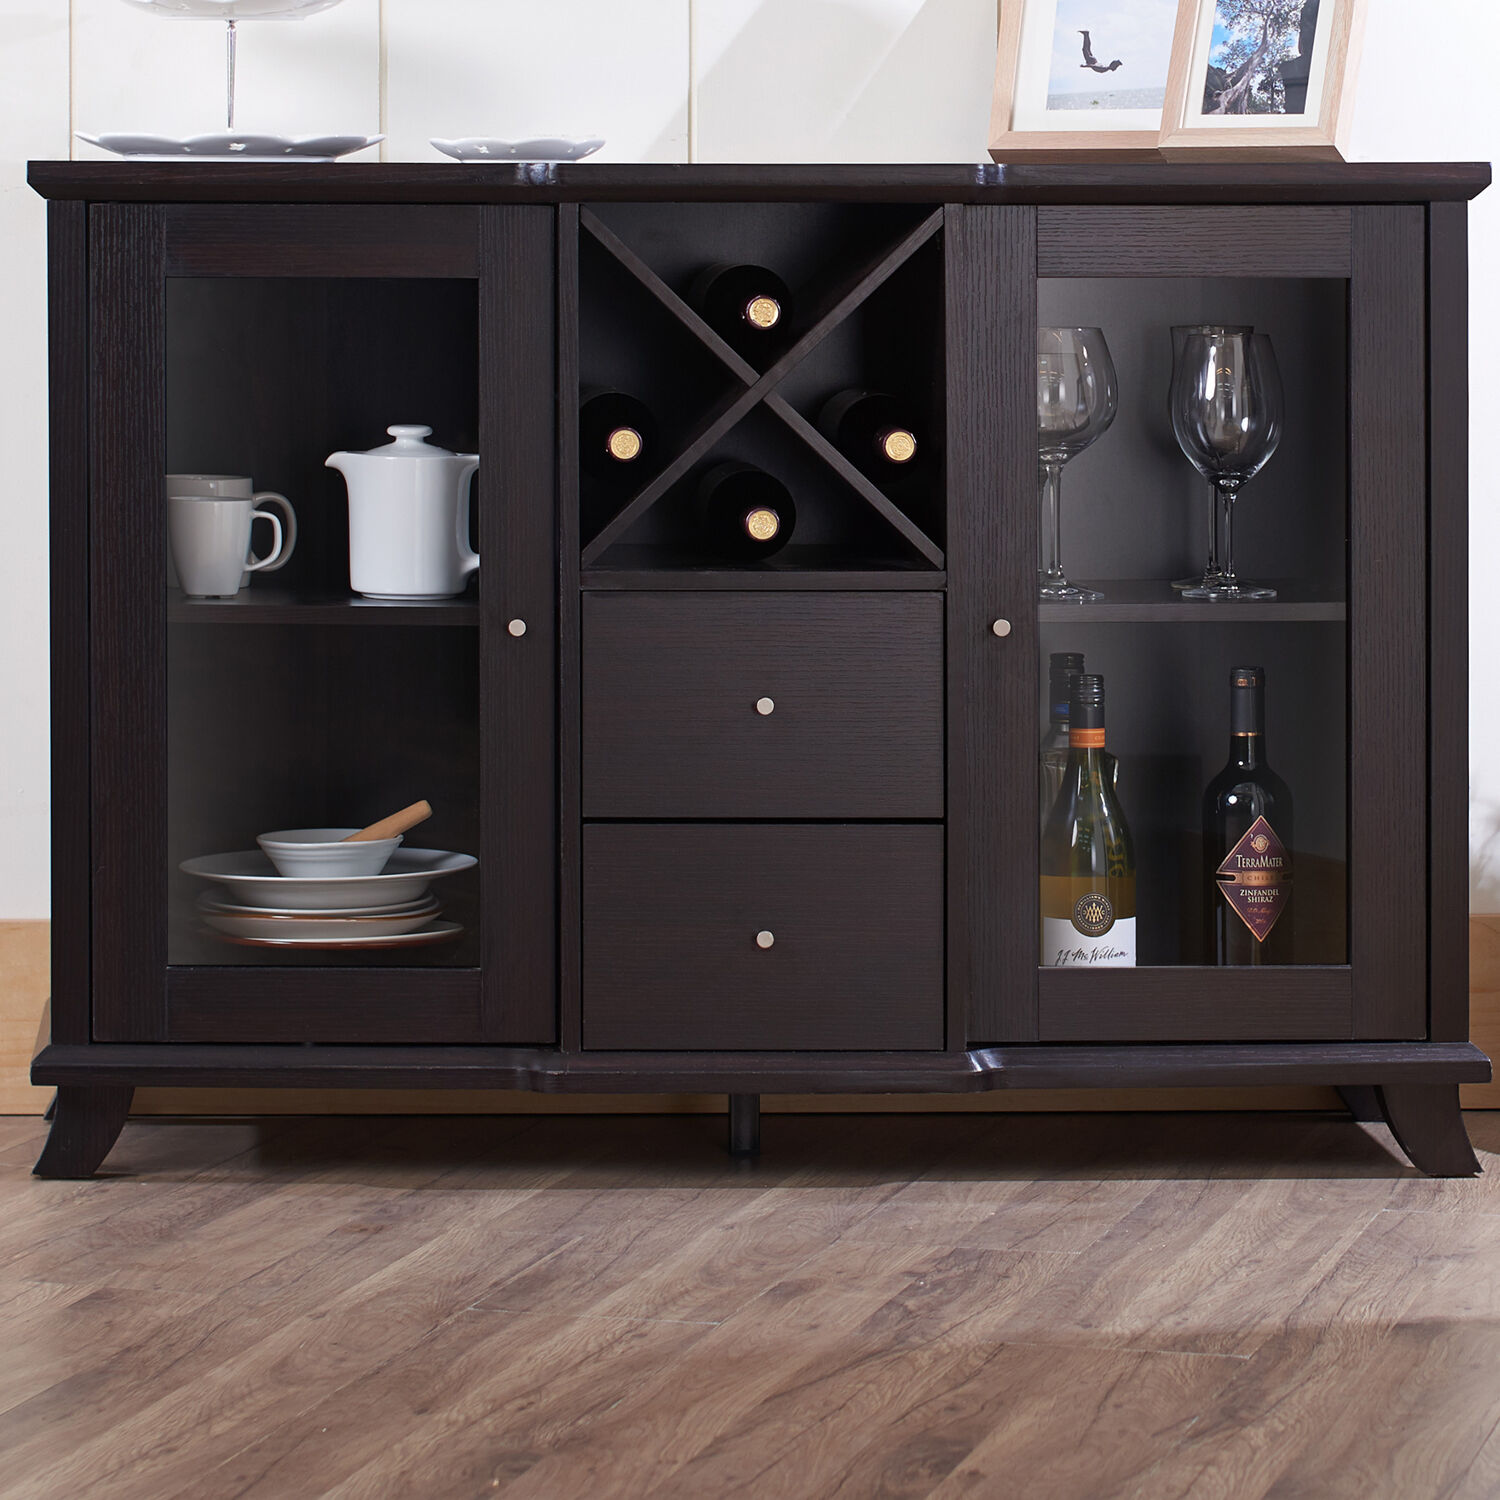 Buffet cabinet hutch table dining kitchen furniture server wine rack sideboard 1 of 7only 3 available